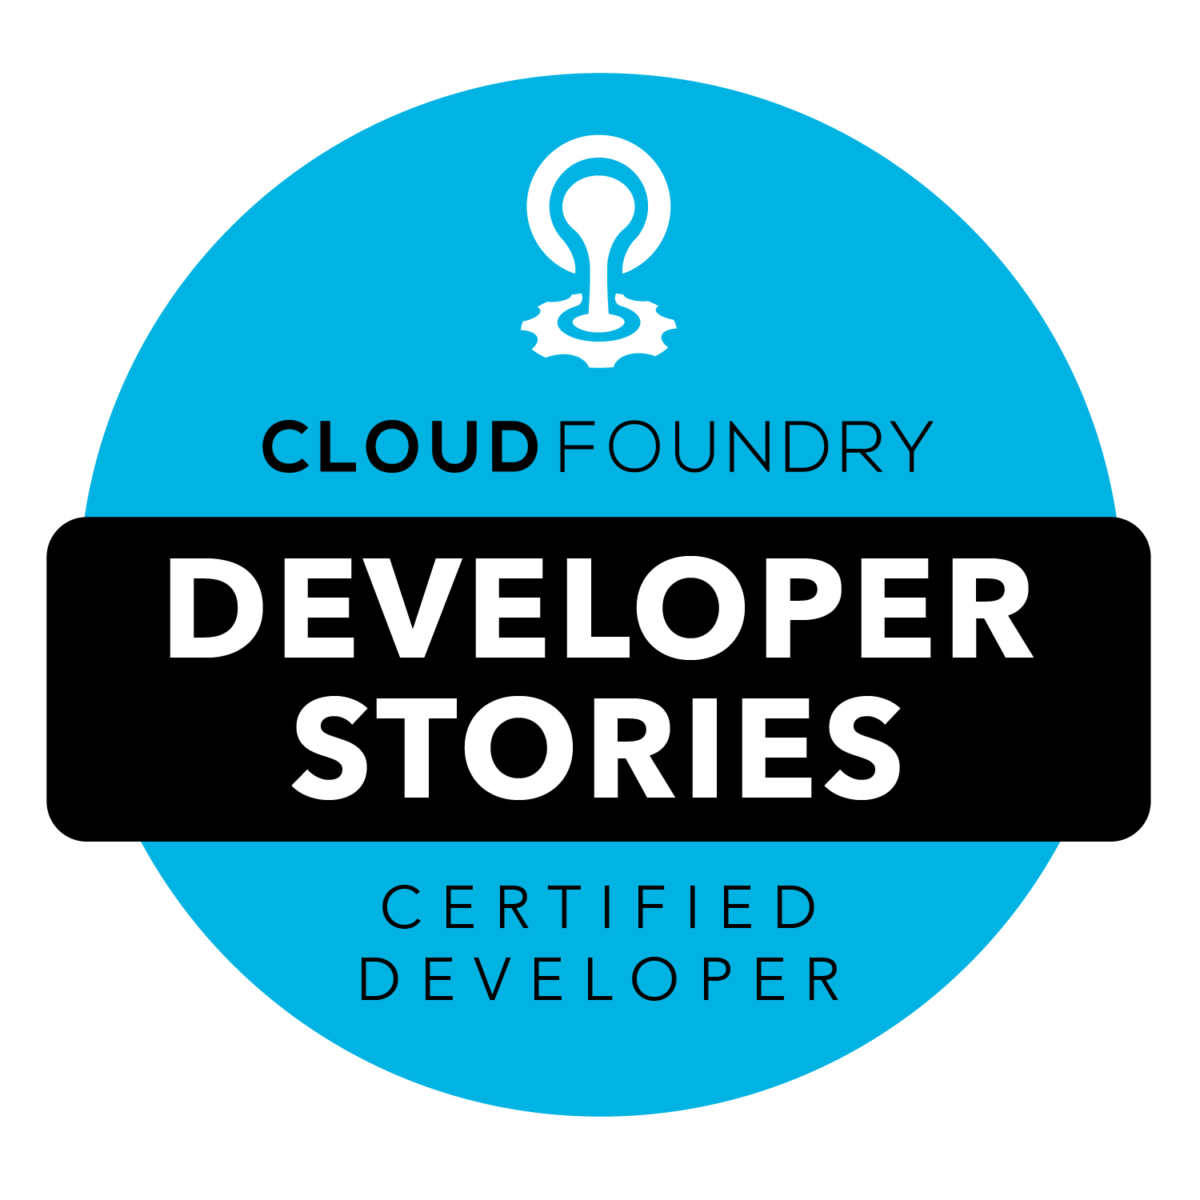 CFCD Developer Stories